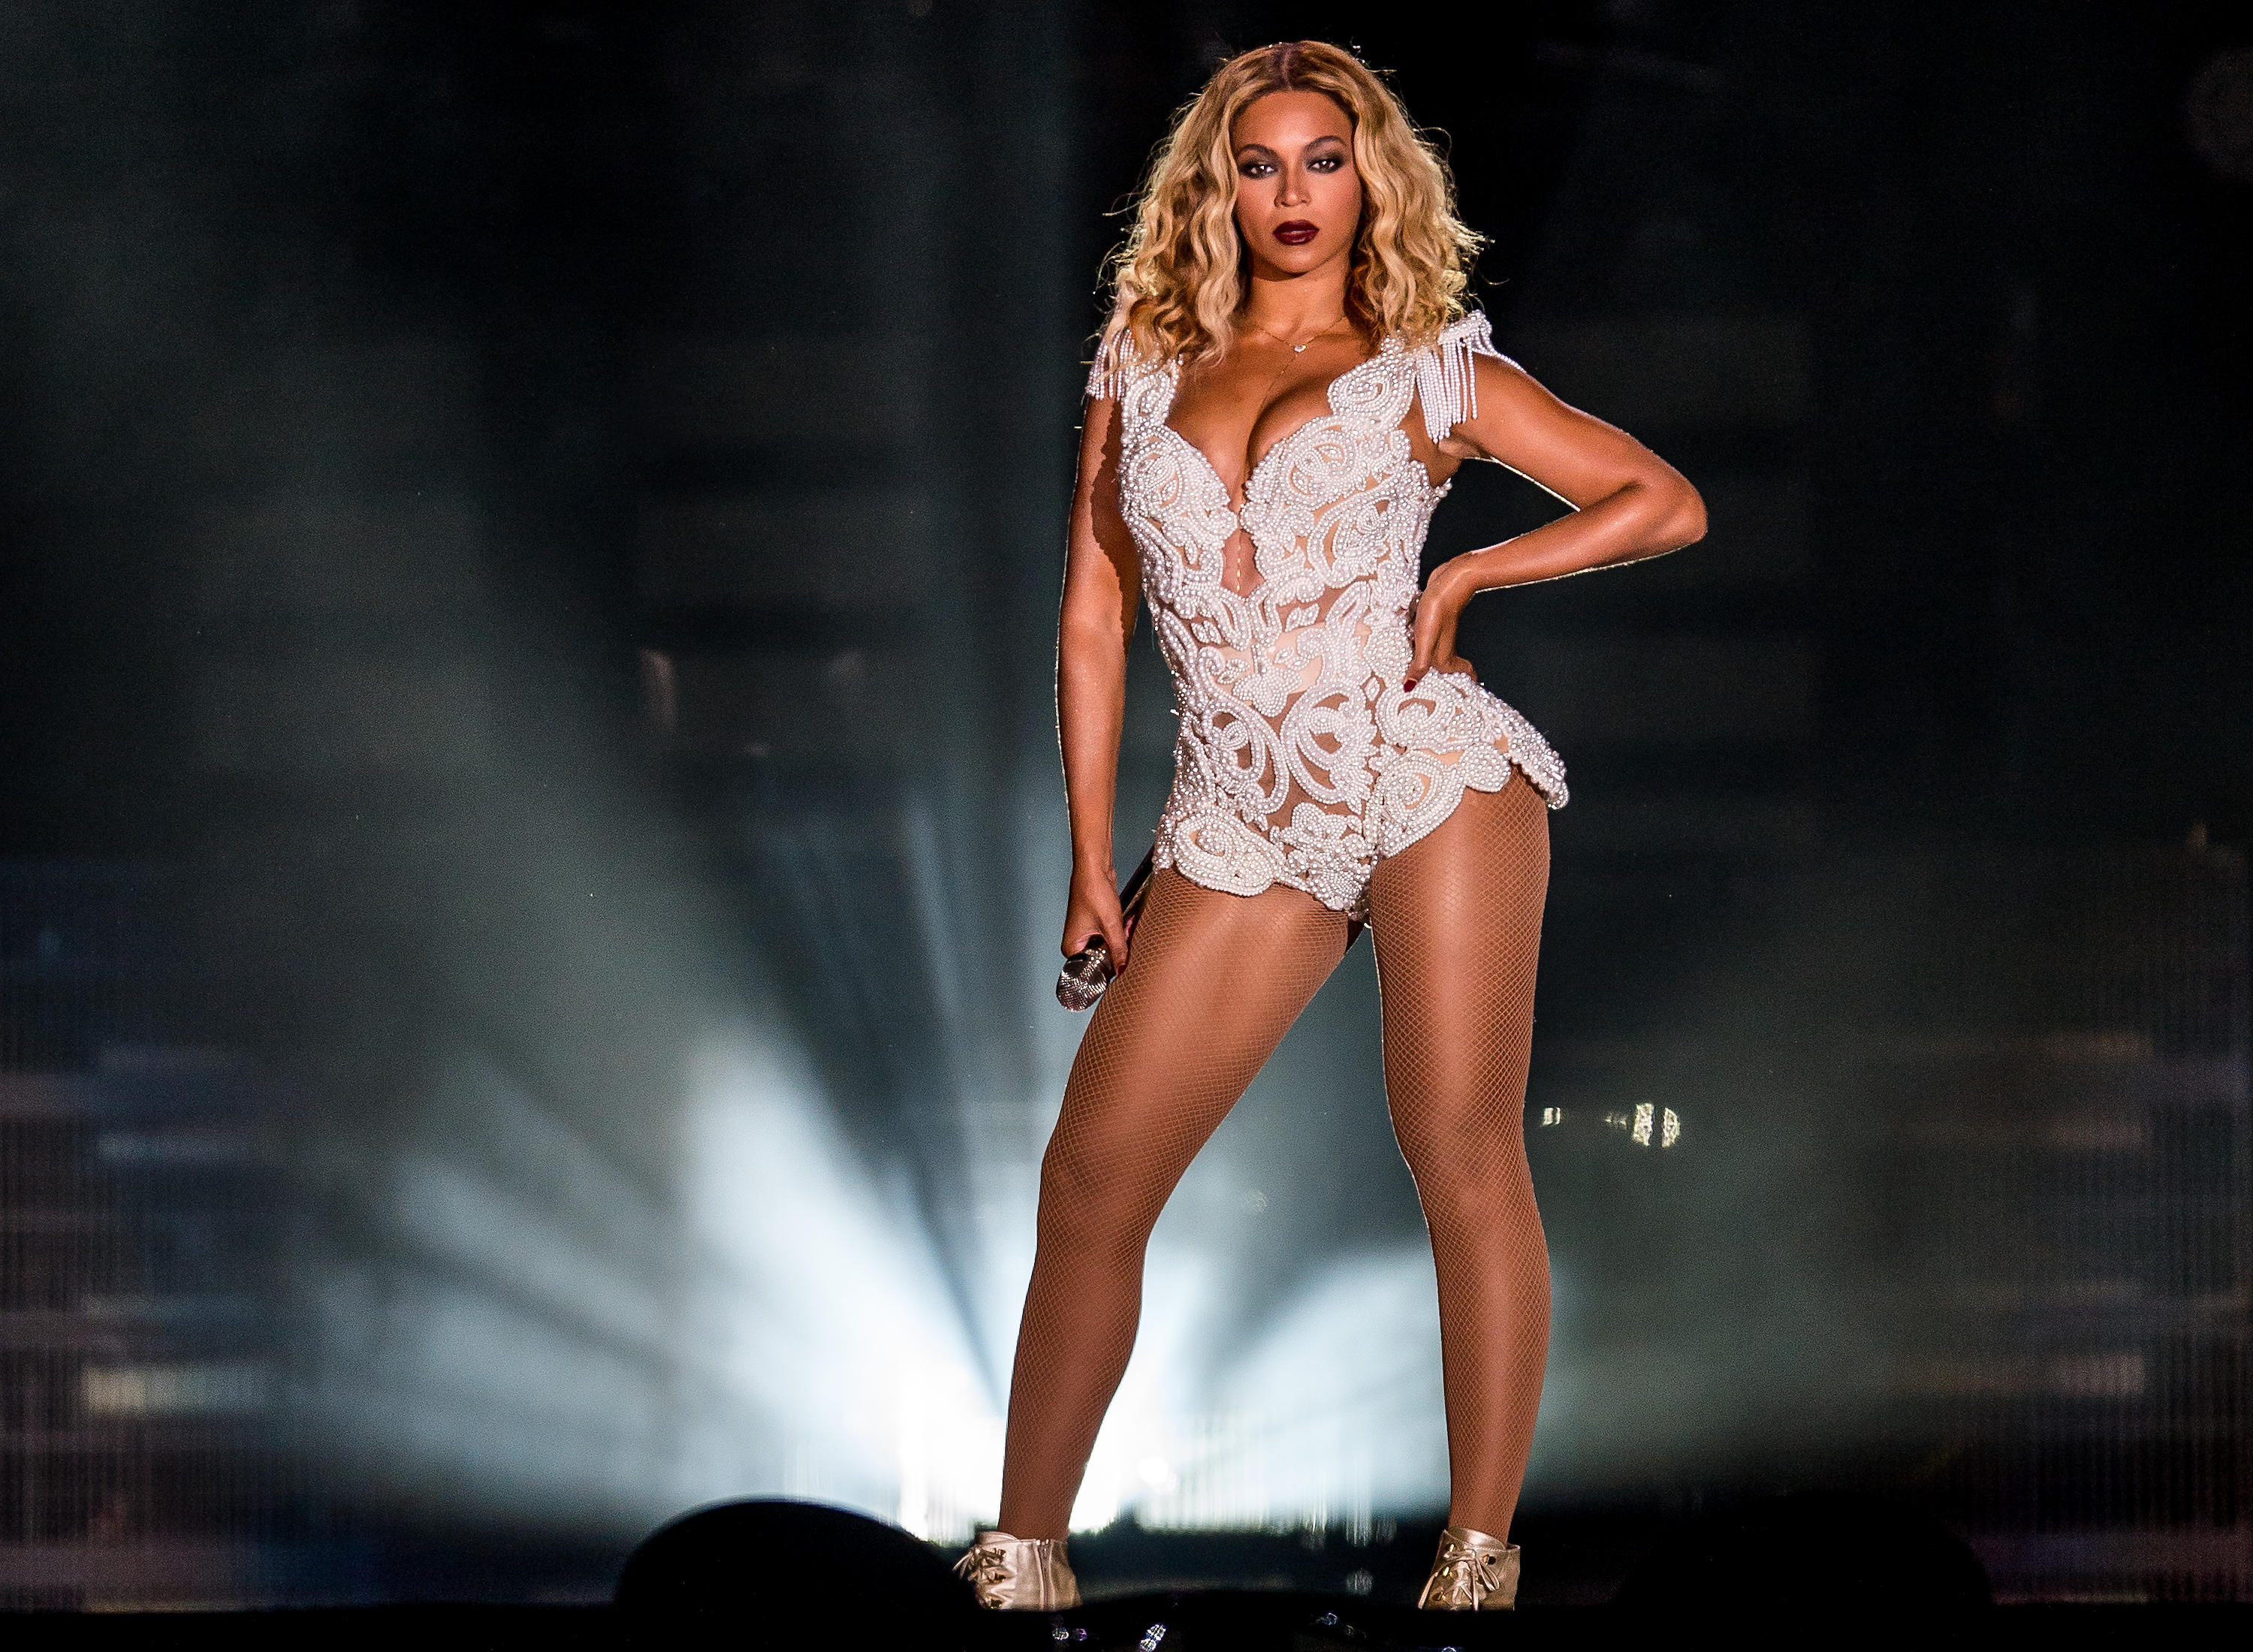 Beyoncé Explains Why Women Need To Own Their Sexuality' Beyoncé Explains Why Women Need To Own Their Sexuality' new photo